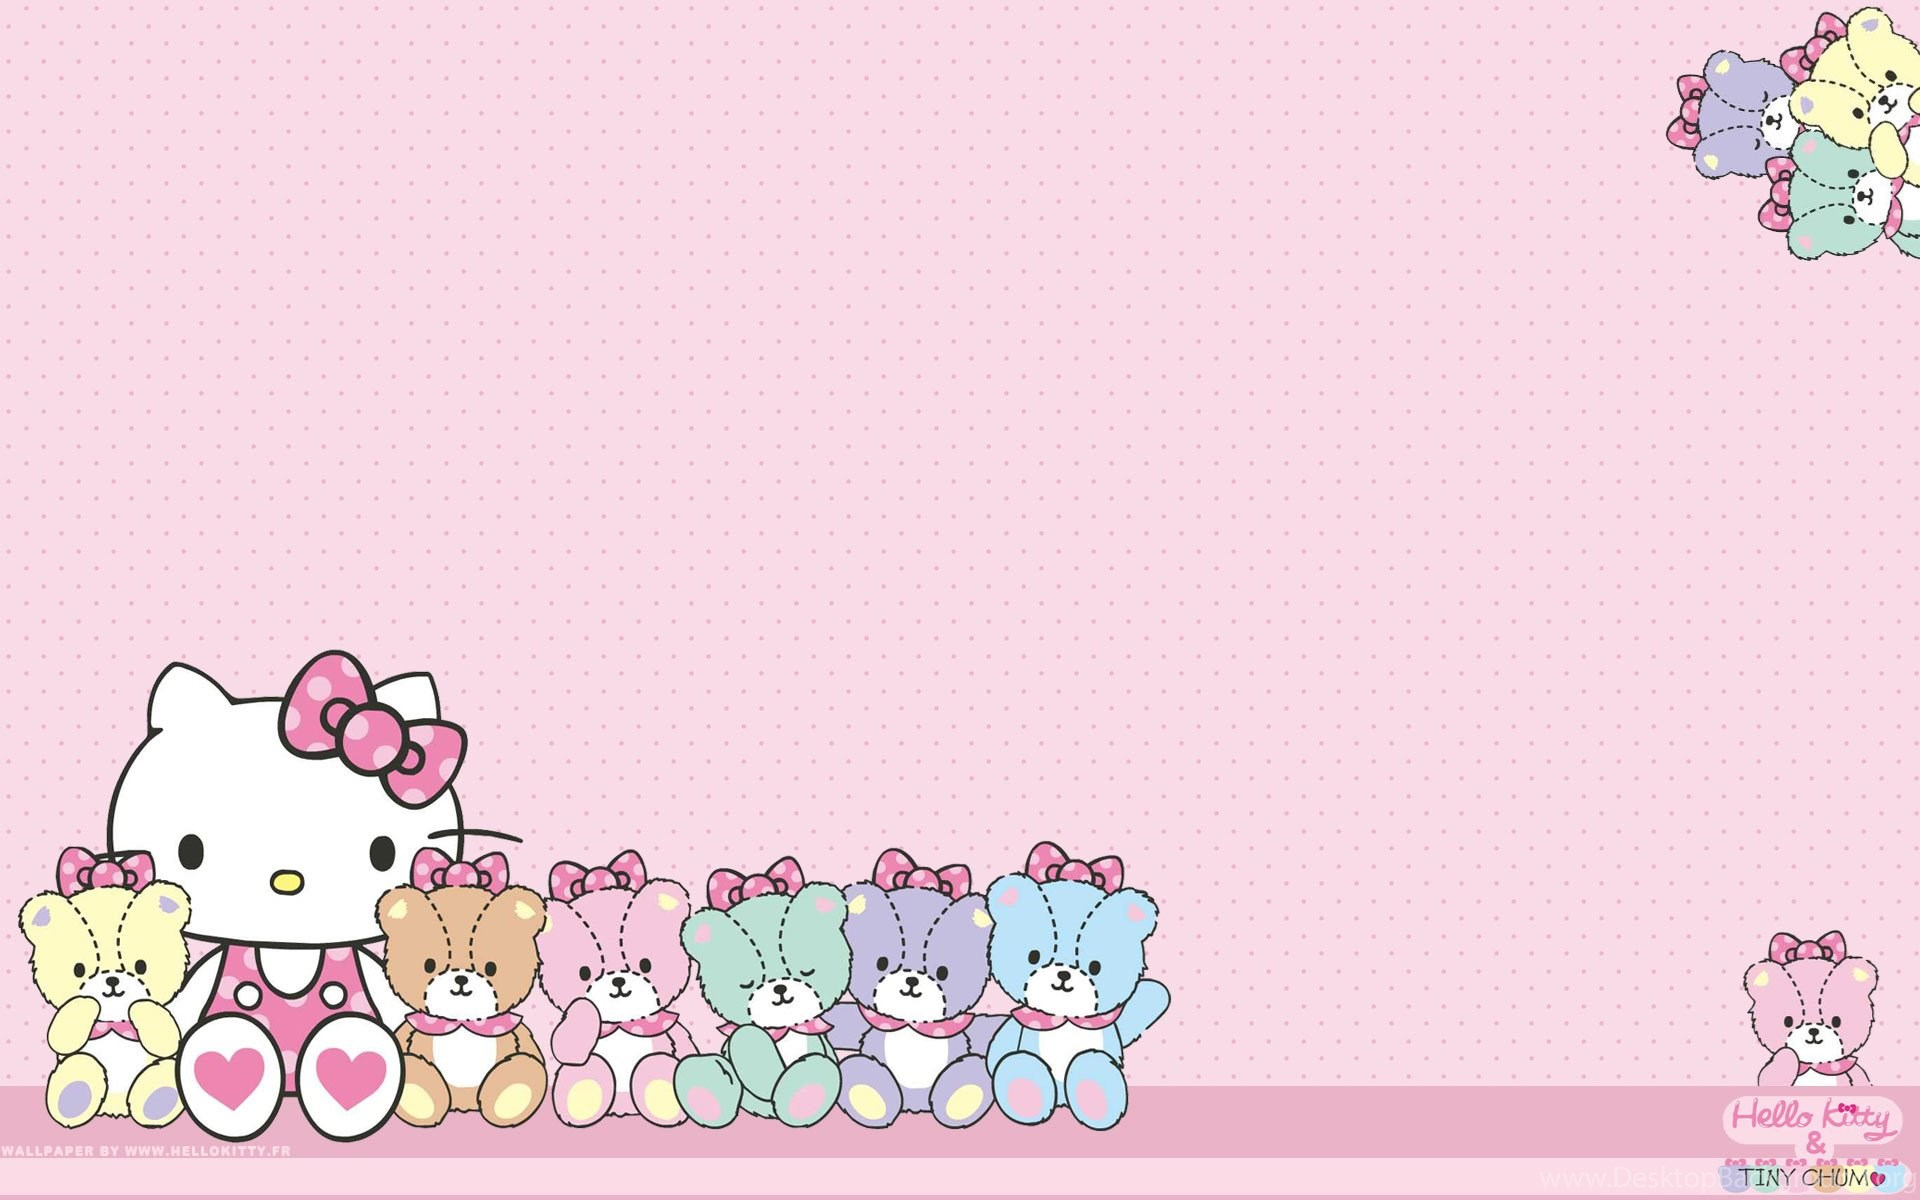 Simple Wallpaper Hello Kitty Iphone 3gs - 613466_sanrio-hello-kitty-desktop-wallpaper-images_1920x1200_h  HD_569062.jpg